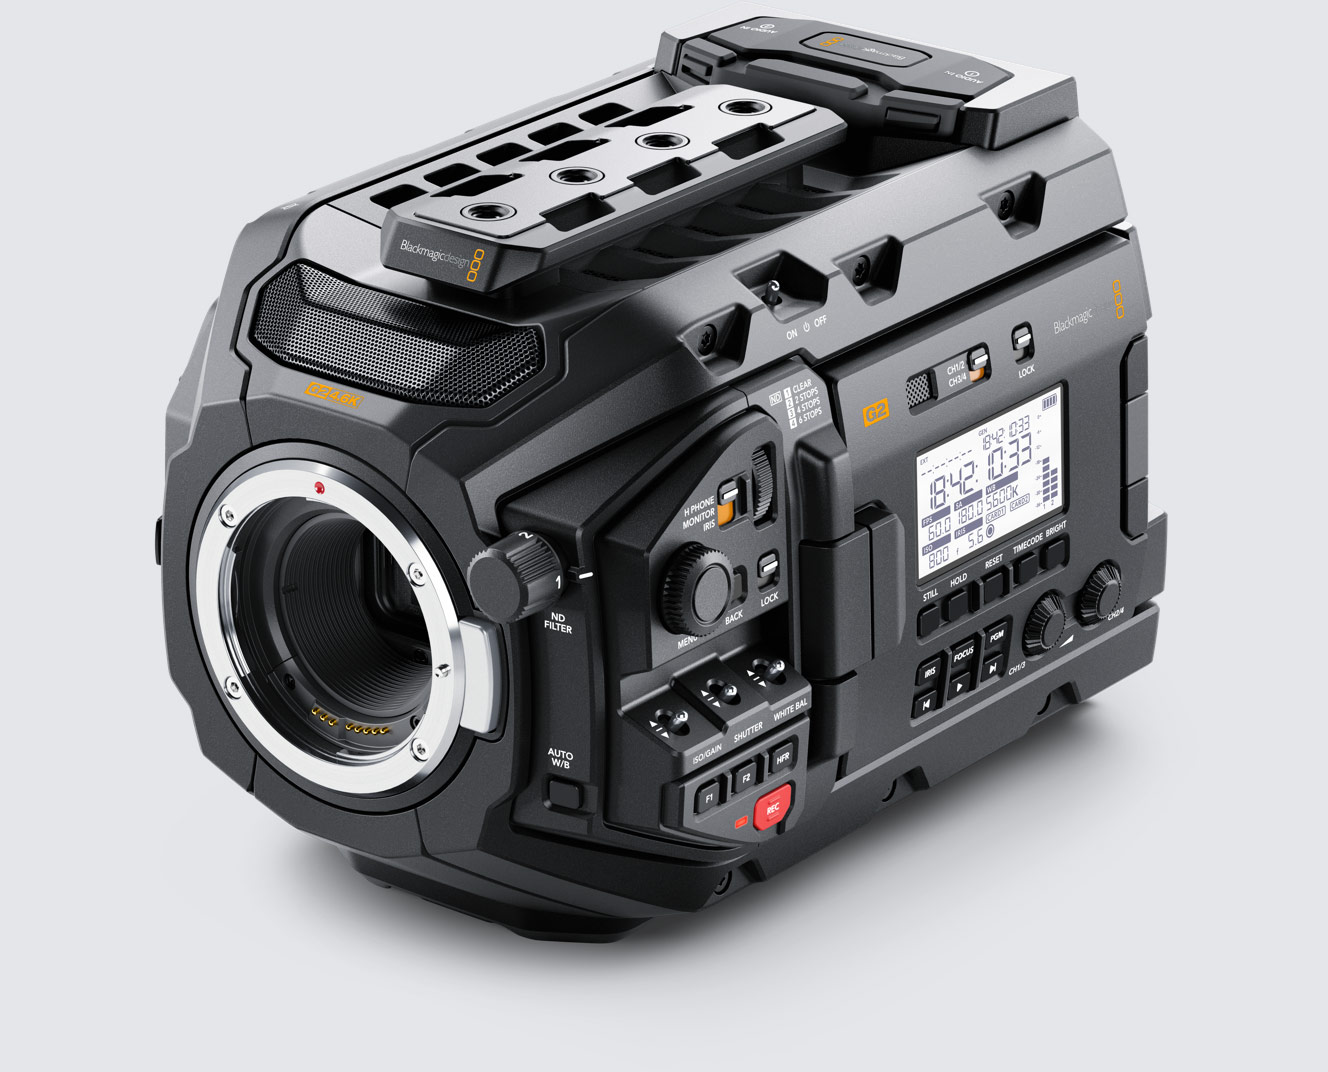 Blackmagic Design URSA Mini Pro G2 4.6K Digital Cinema Camera